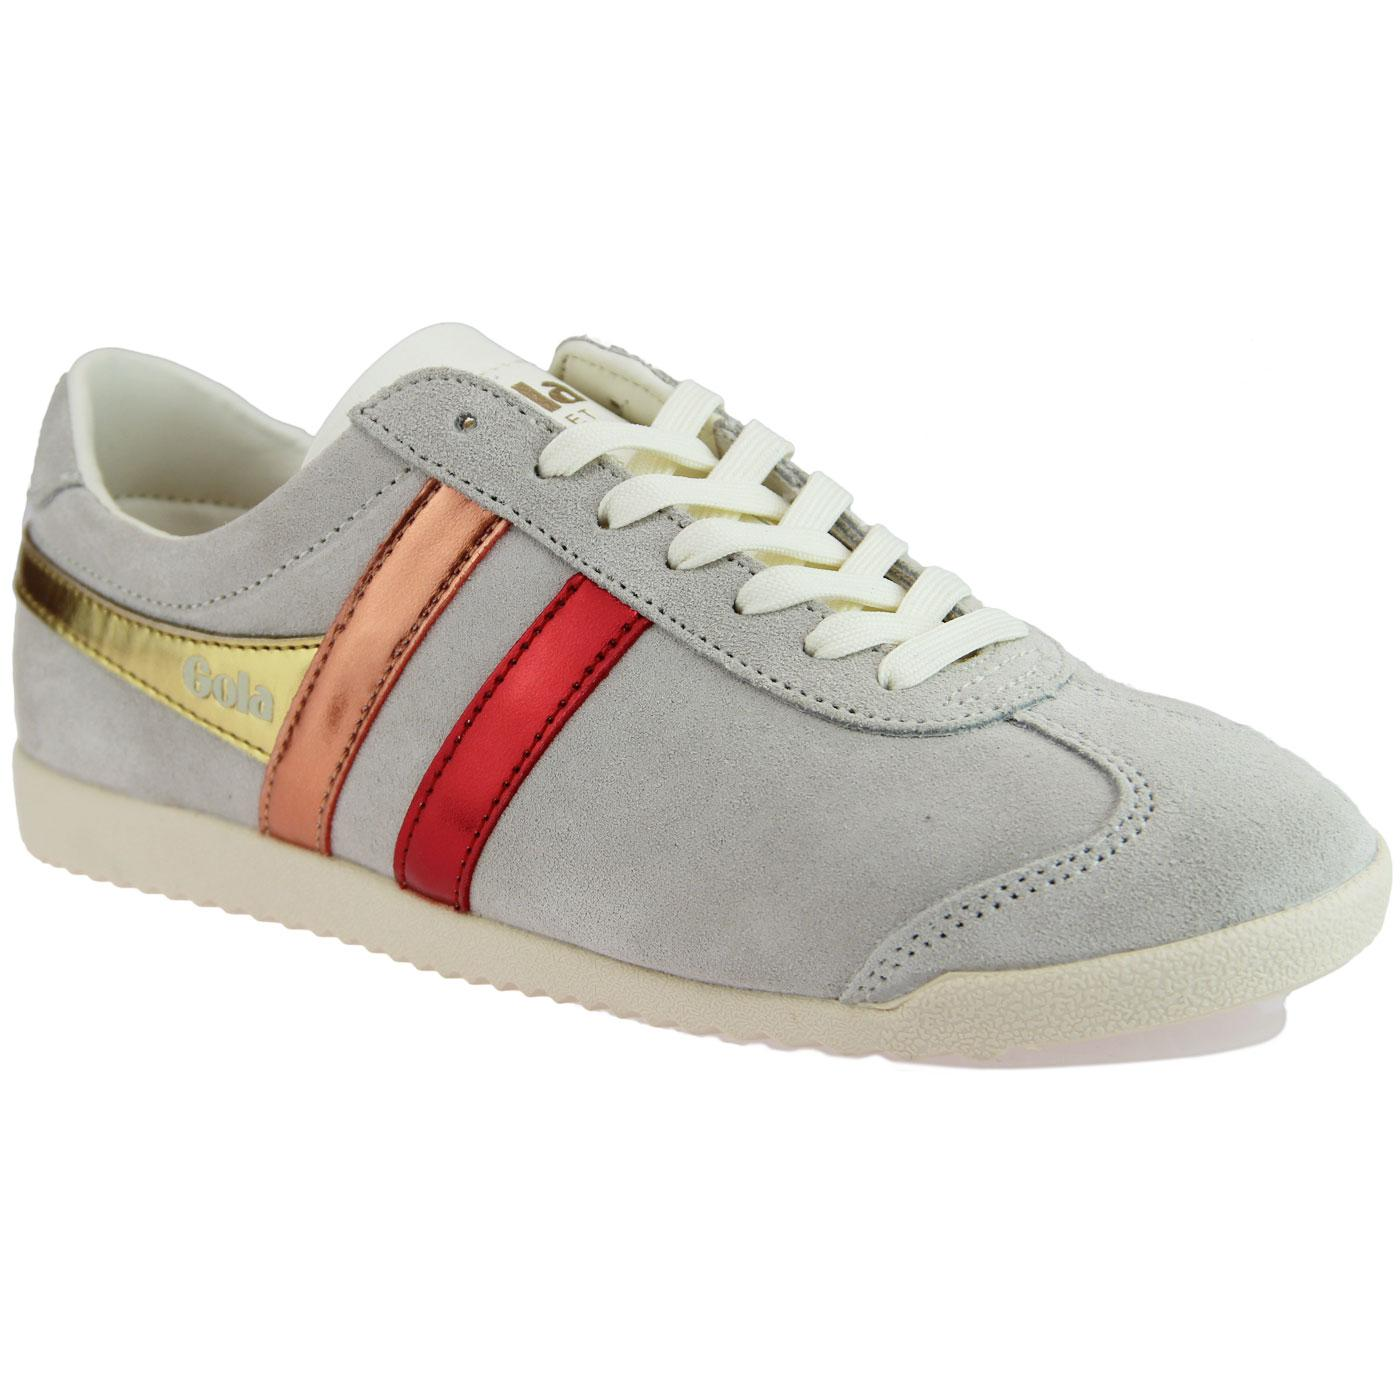 Bullet Flare GOLA Retro Metallic Stripe Trainers W